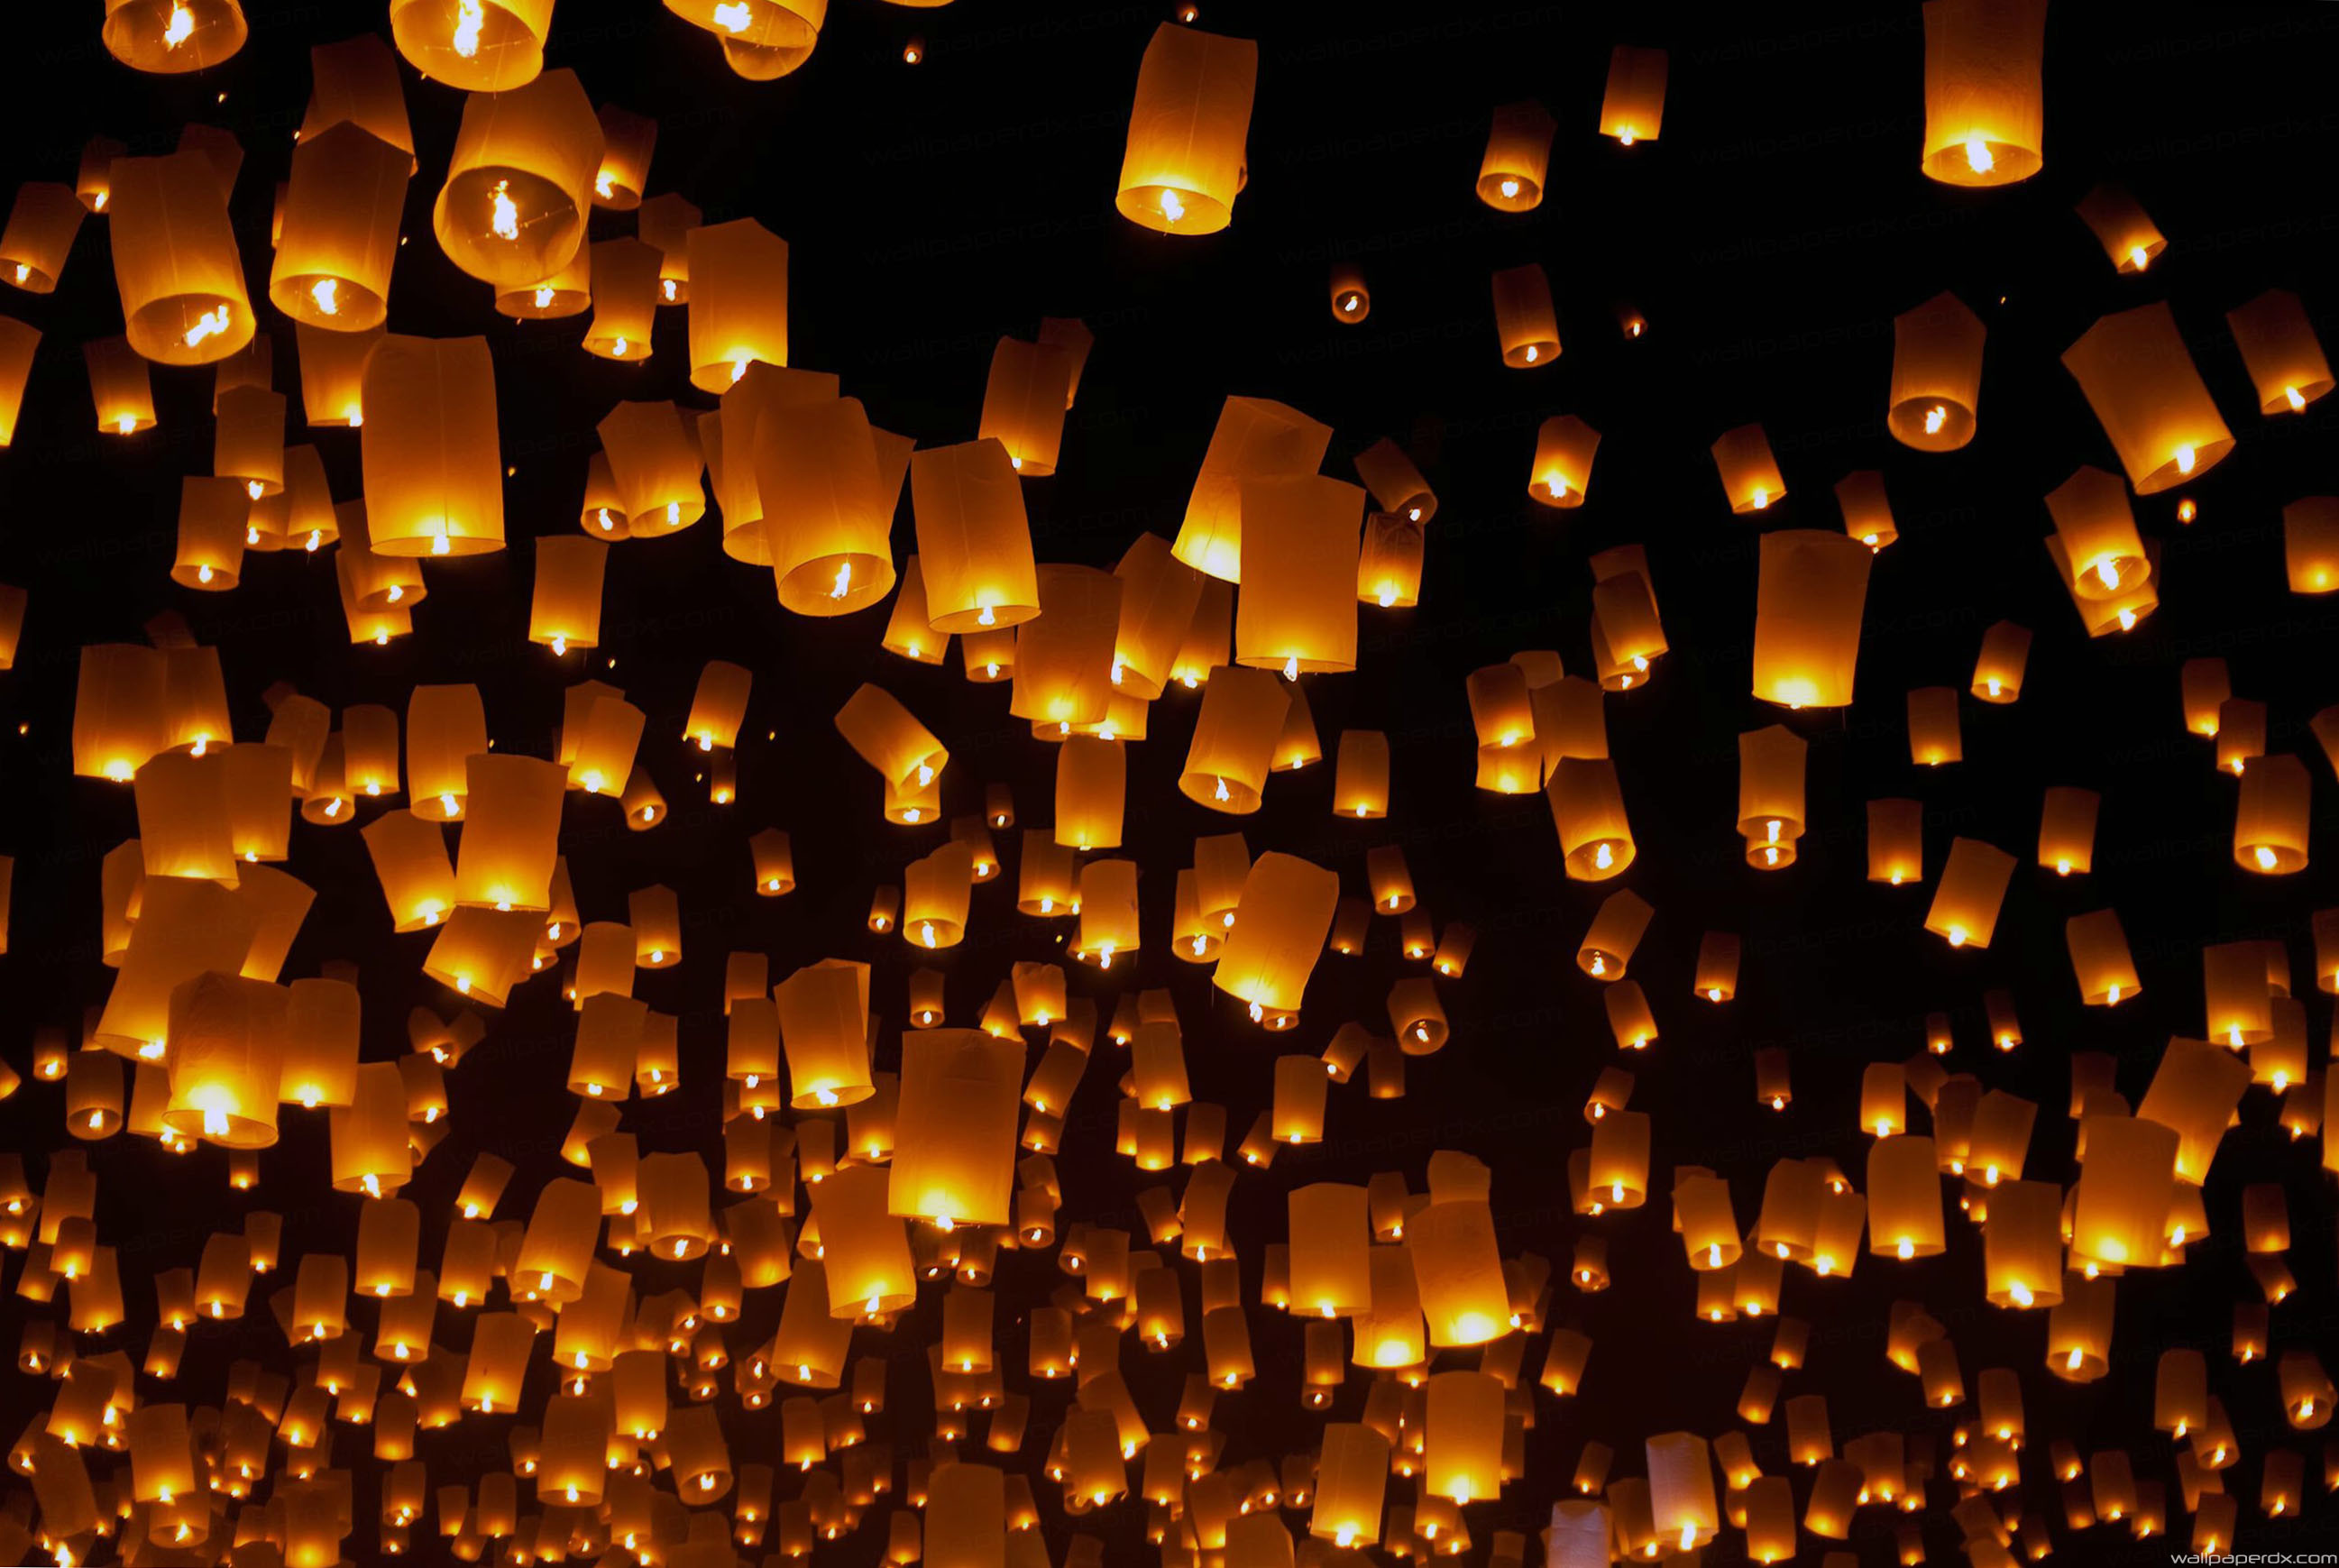 Sky Lanterns Wallpaper Iphone Lanterns Wallpapers ①